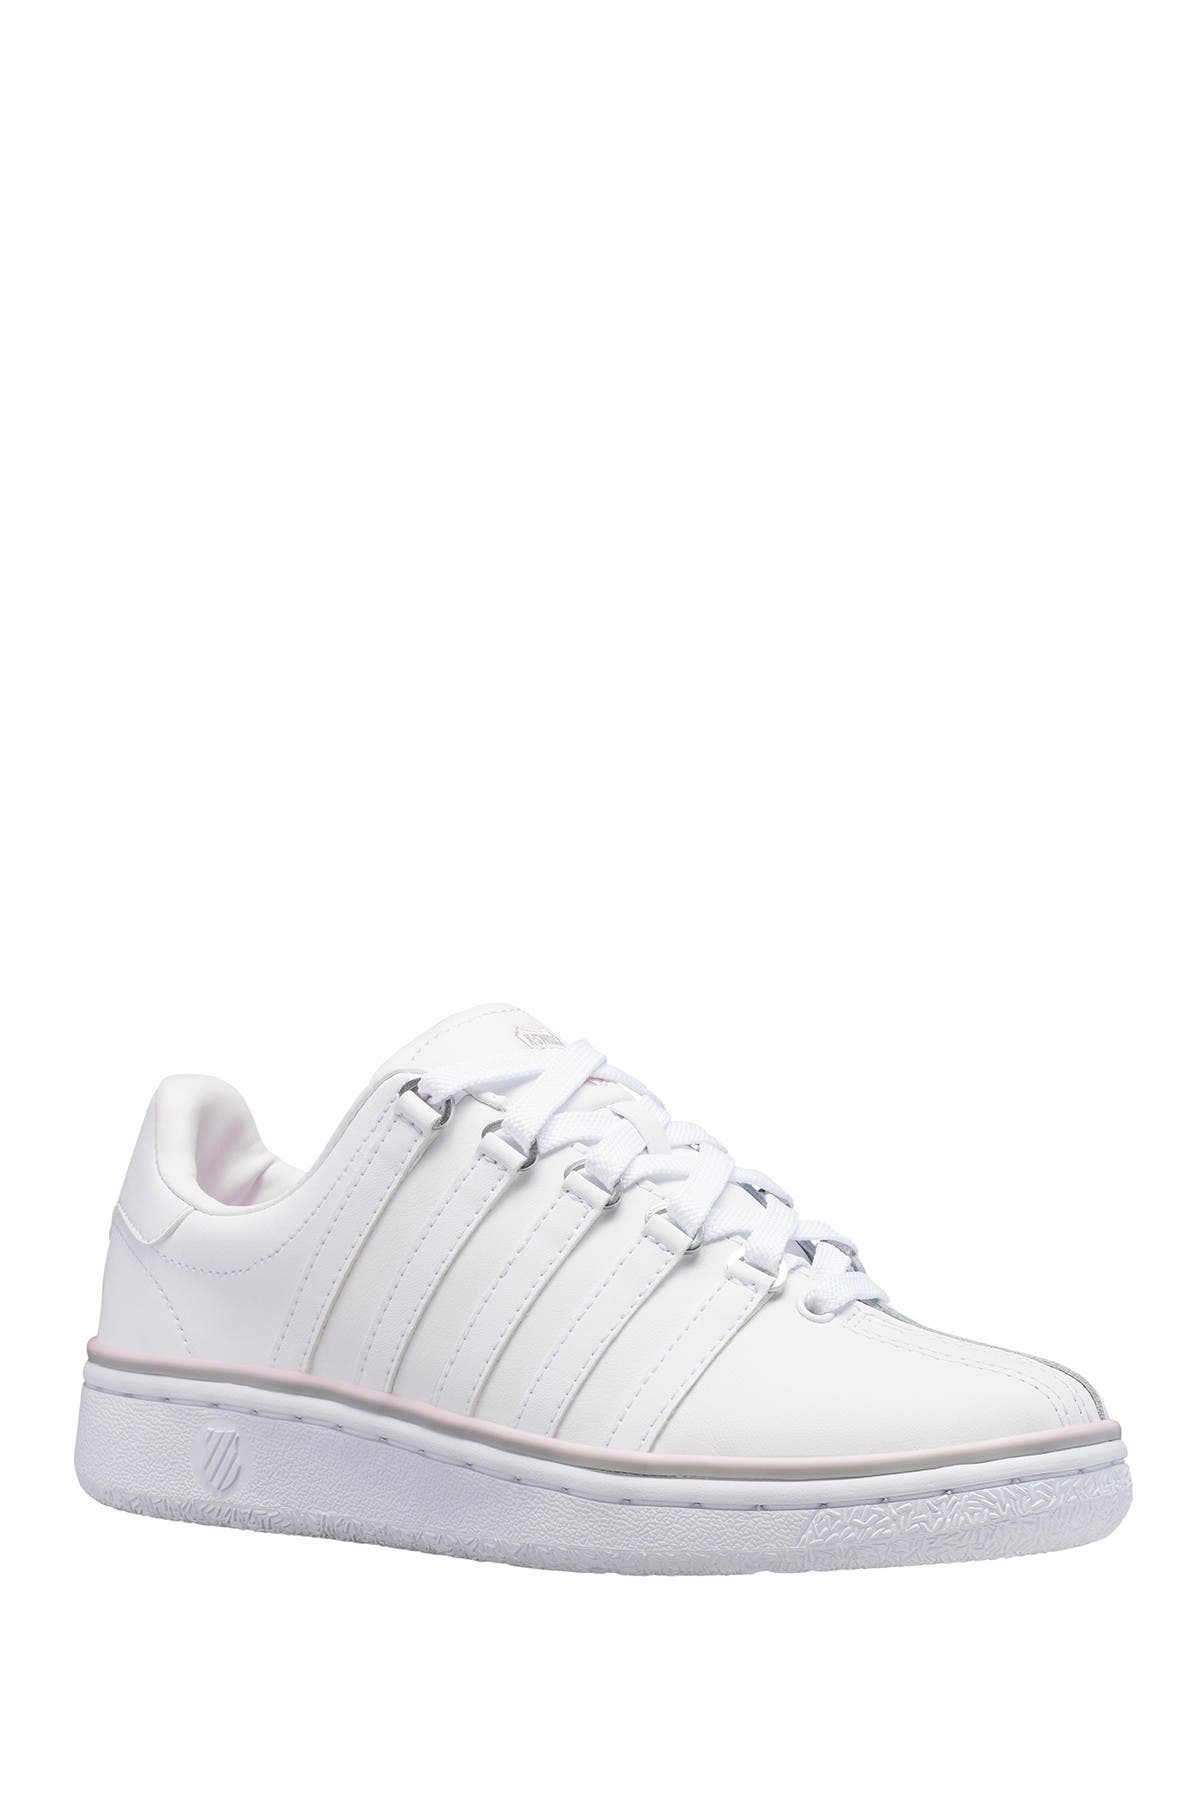 Image of K-Swiss Classic Athletic Sneaker